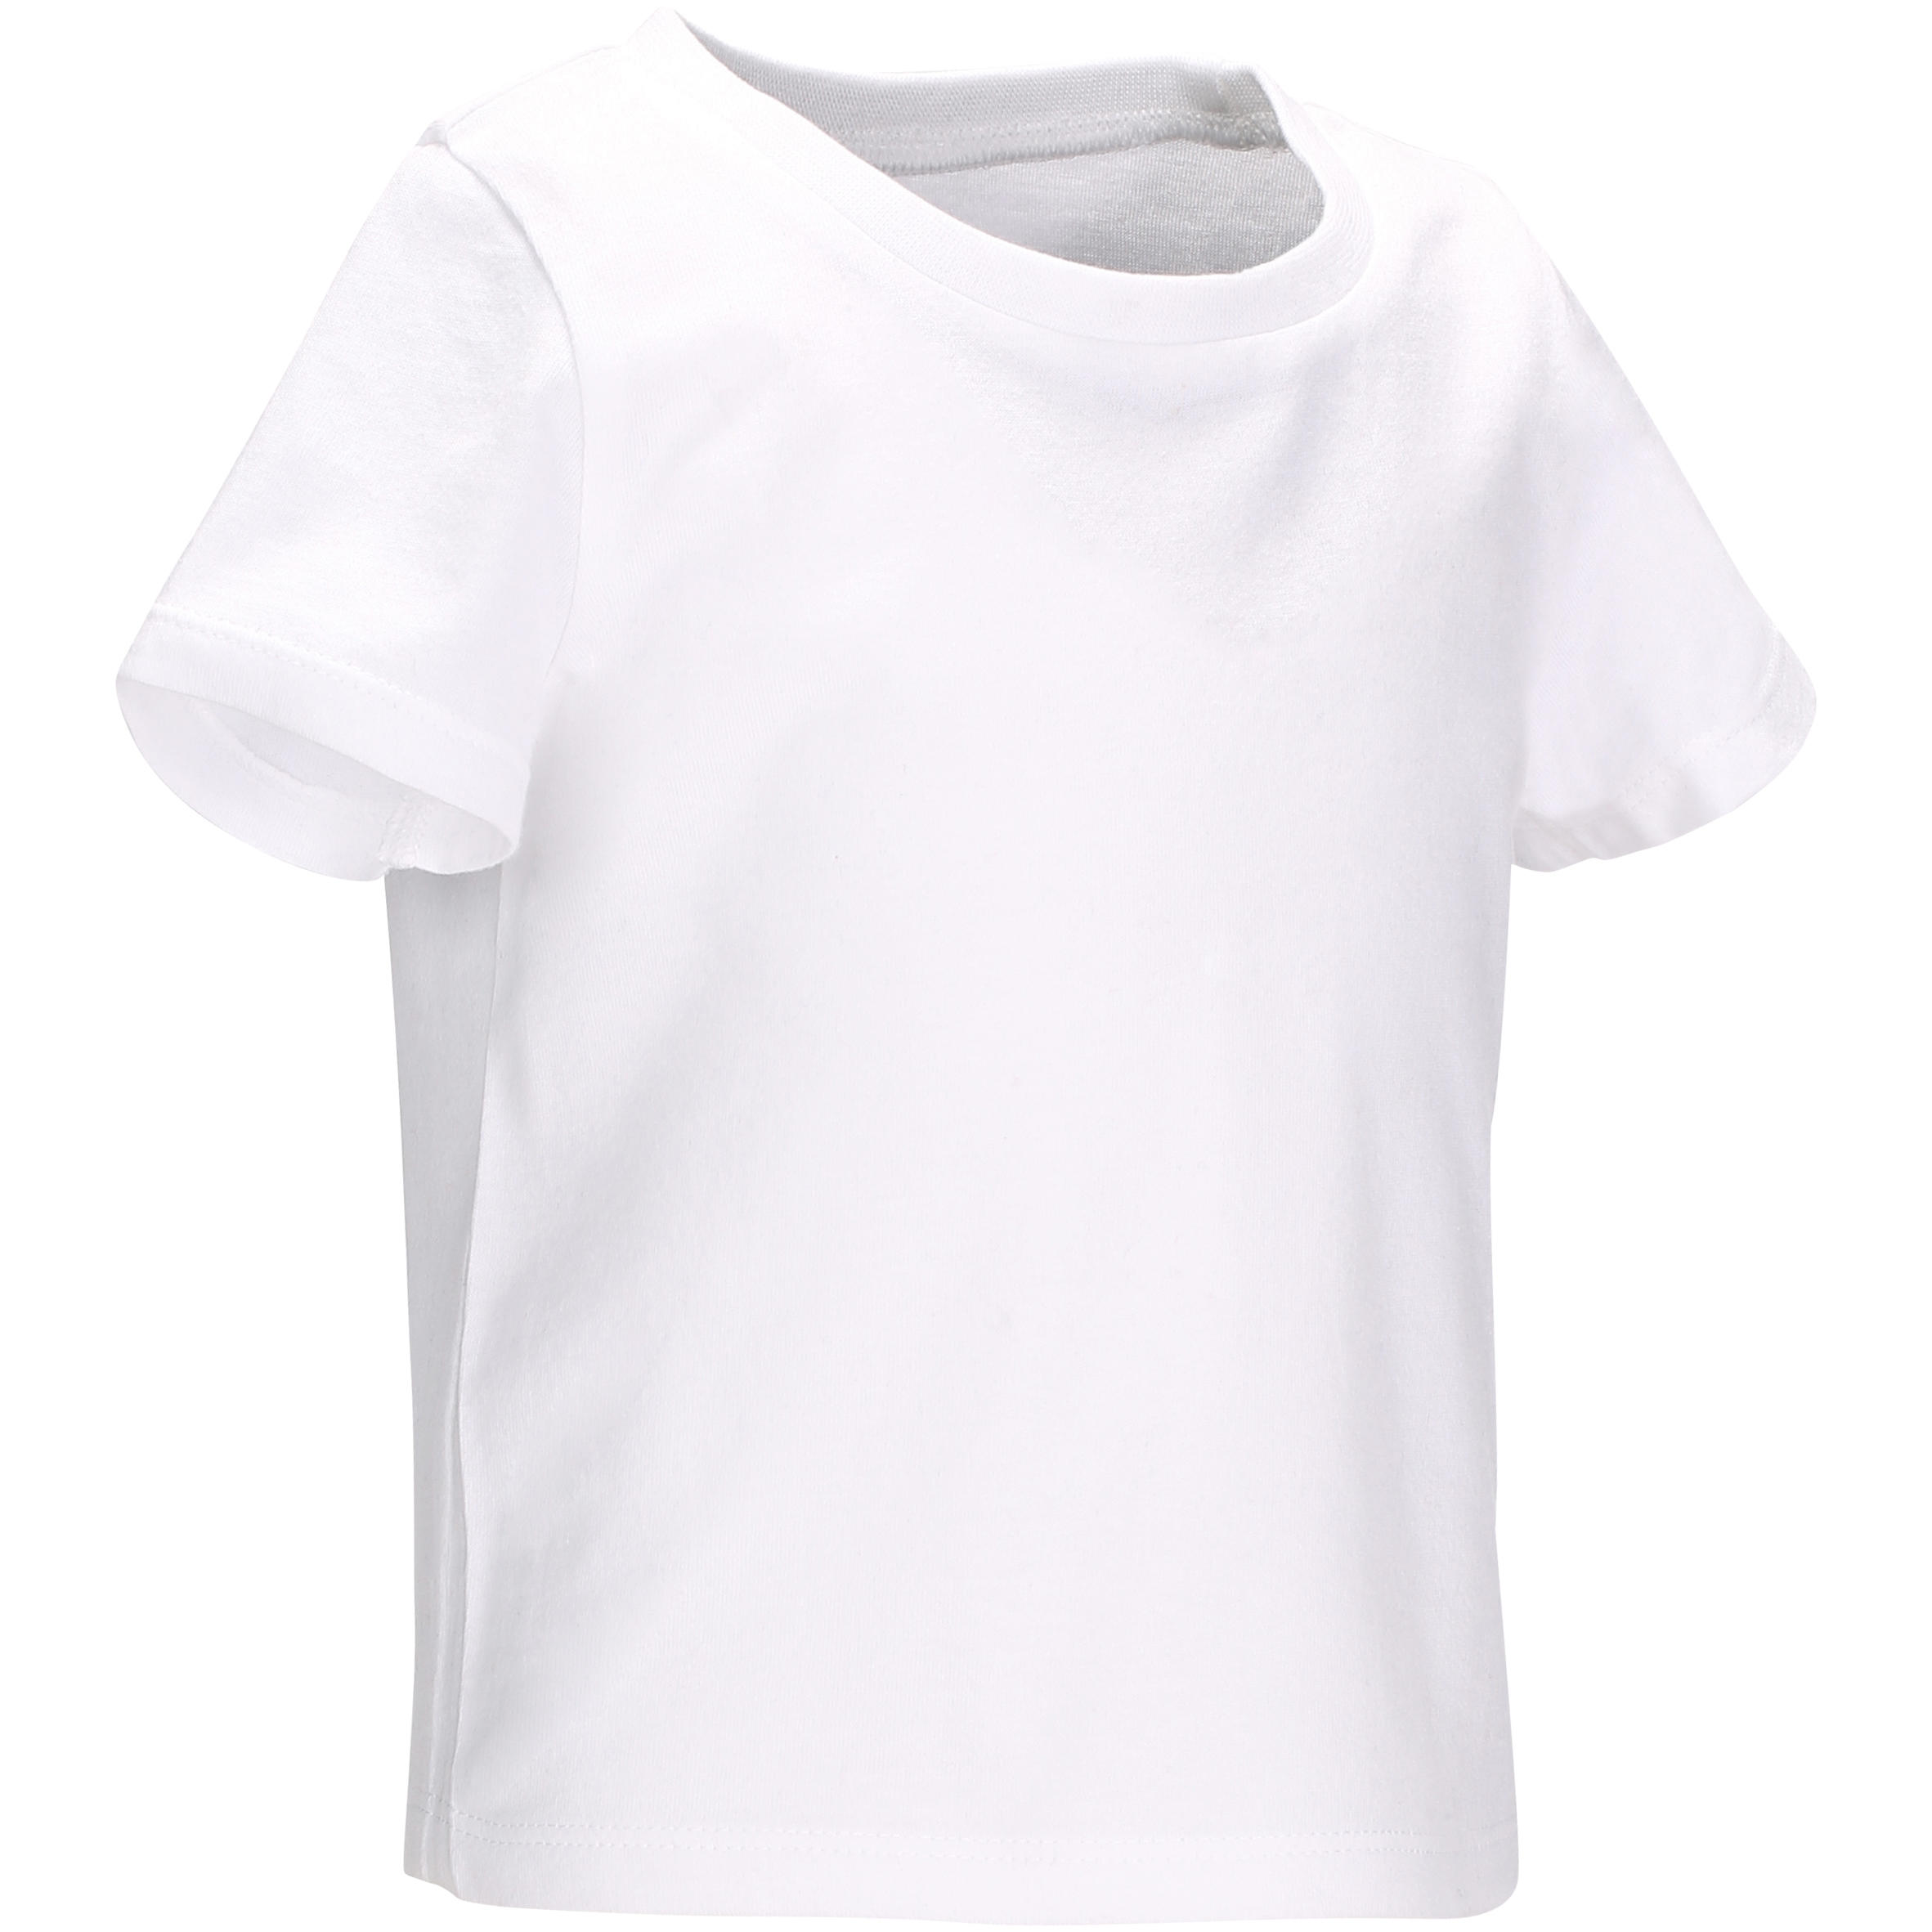 100 Baby Short-Sleeved Gym T-Shirt - White